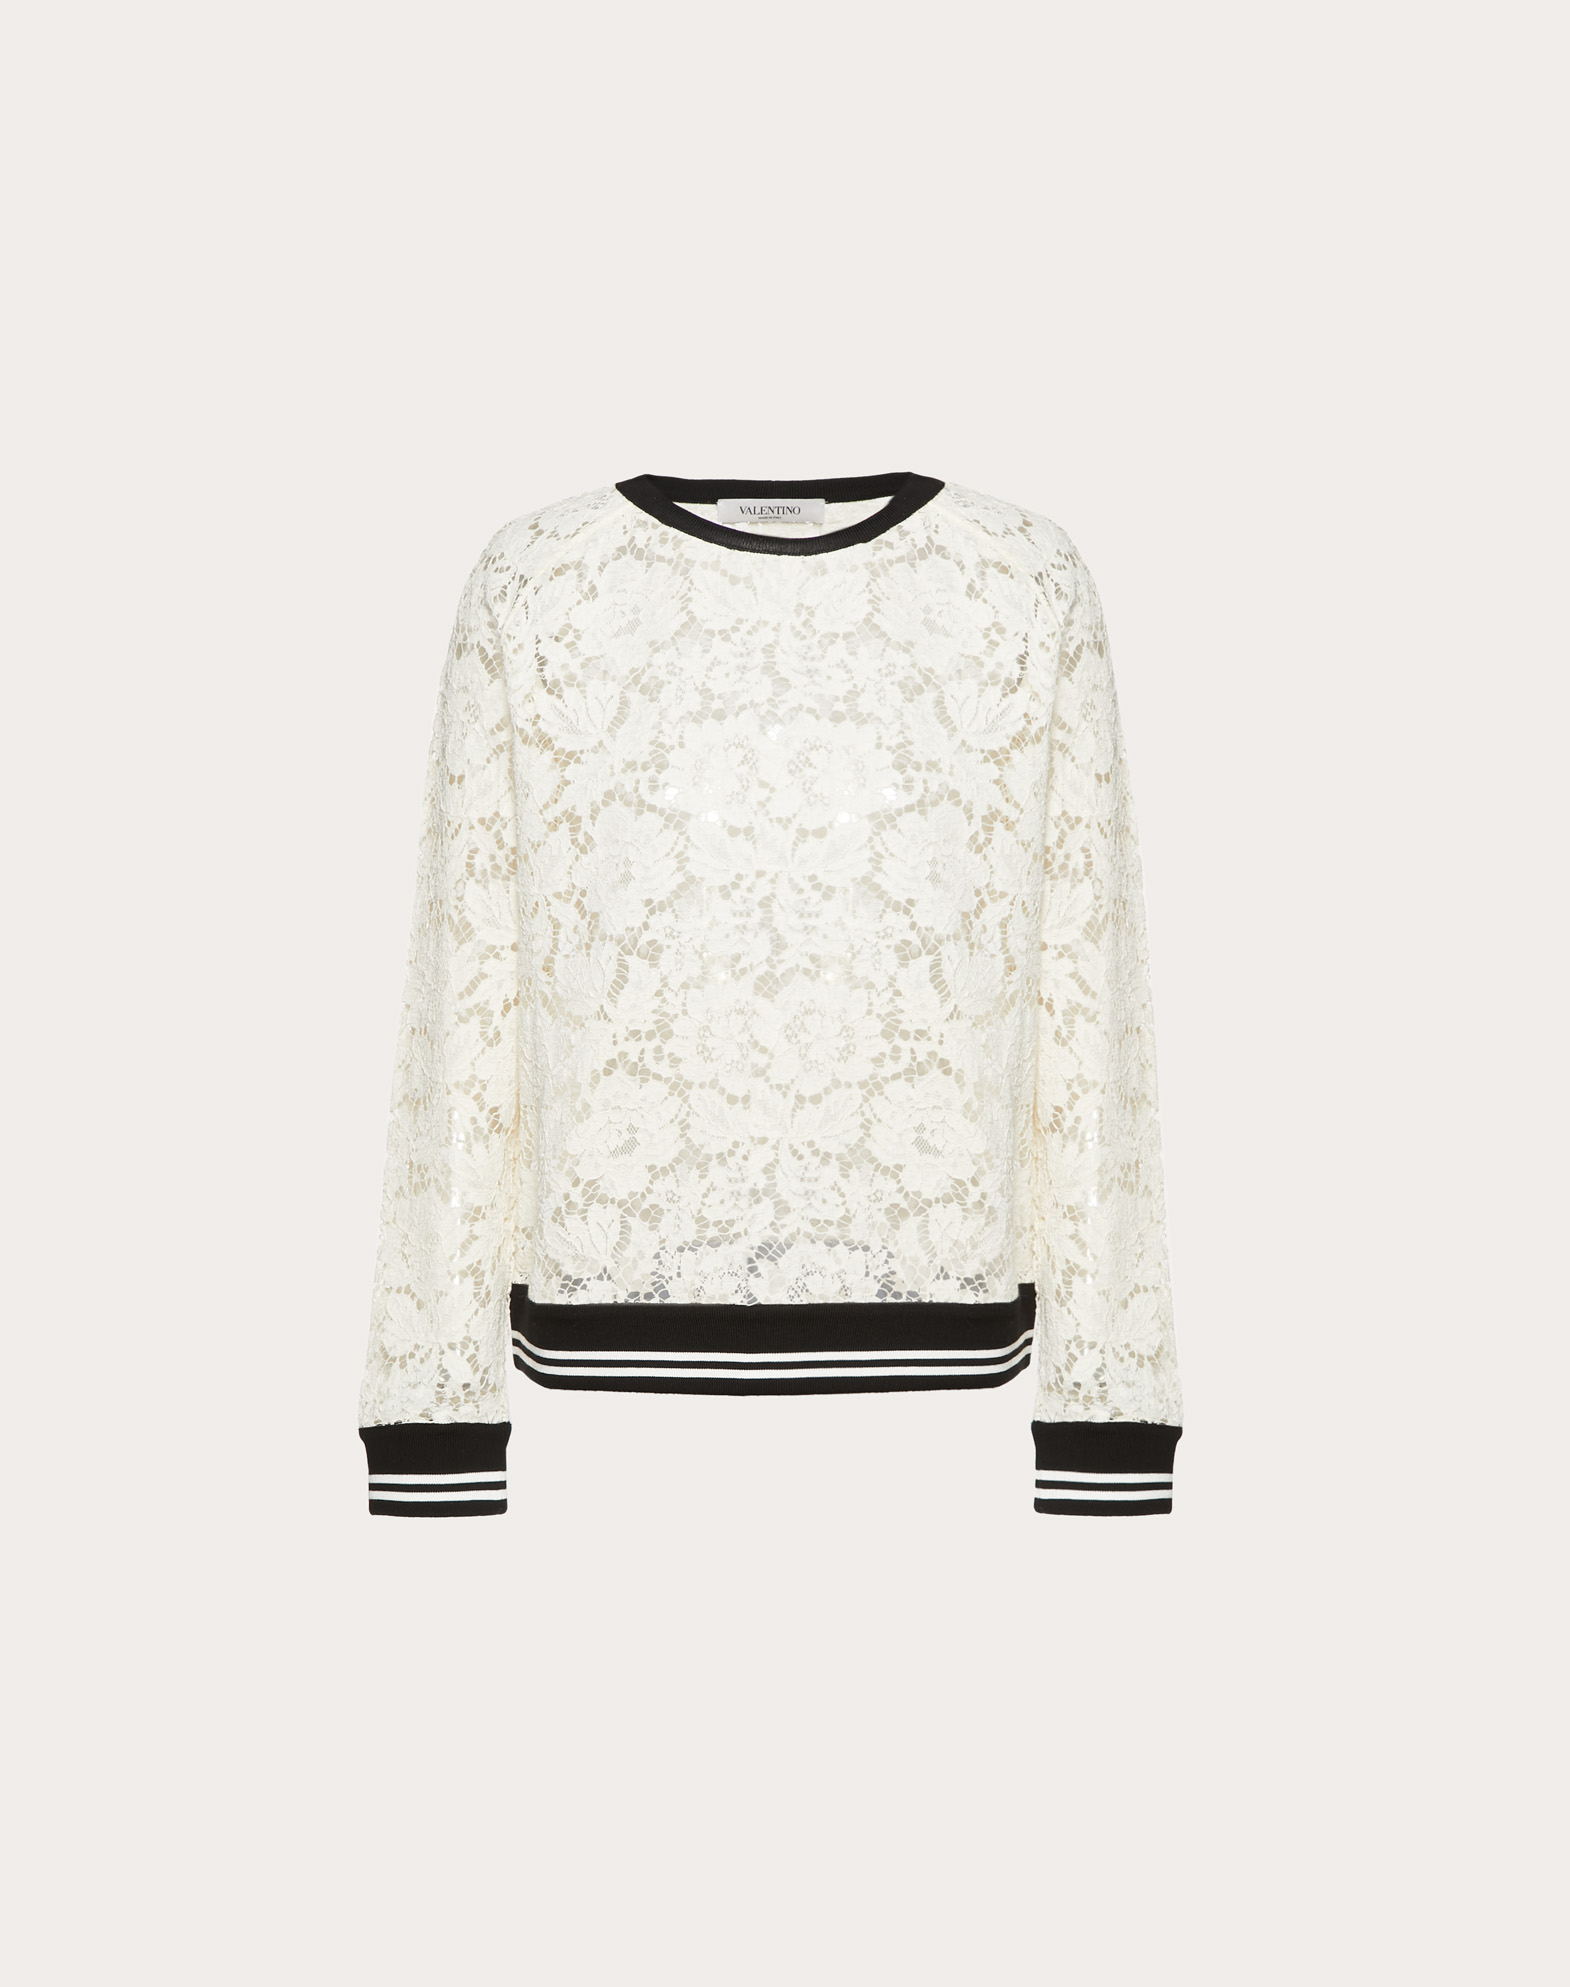 Heavy Lace sweatshirt